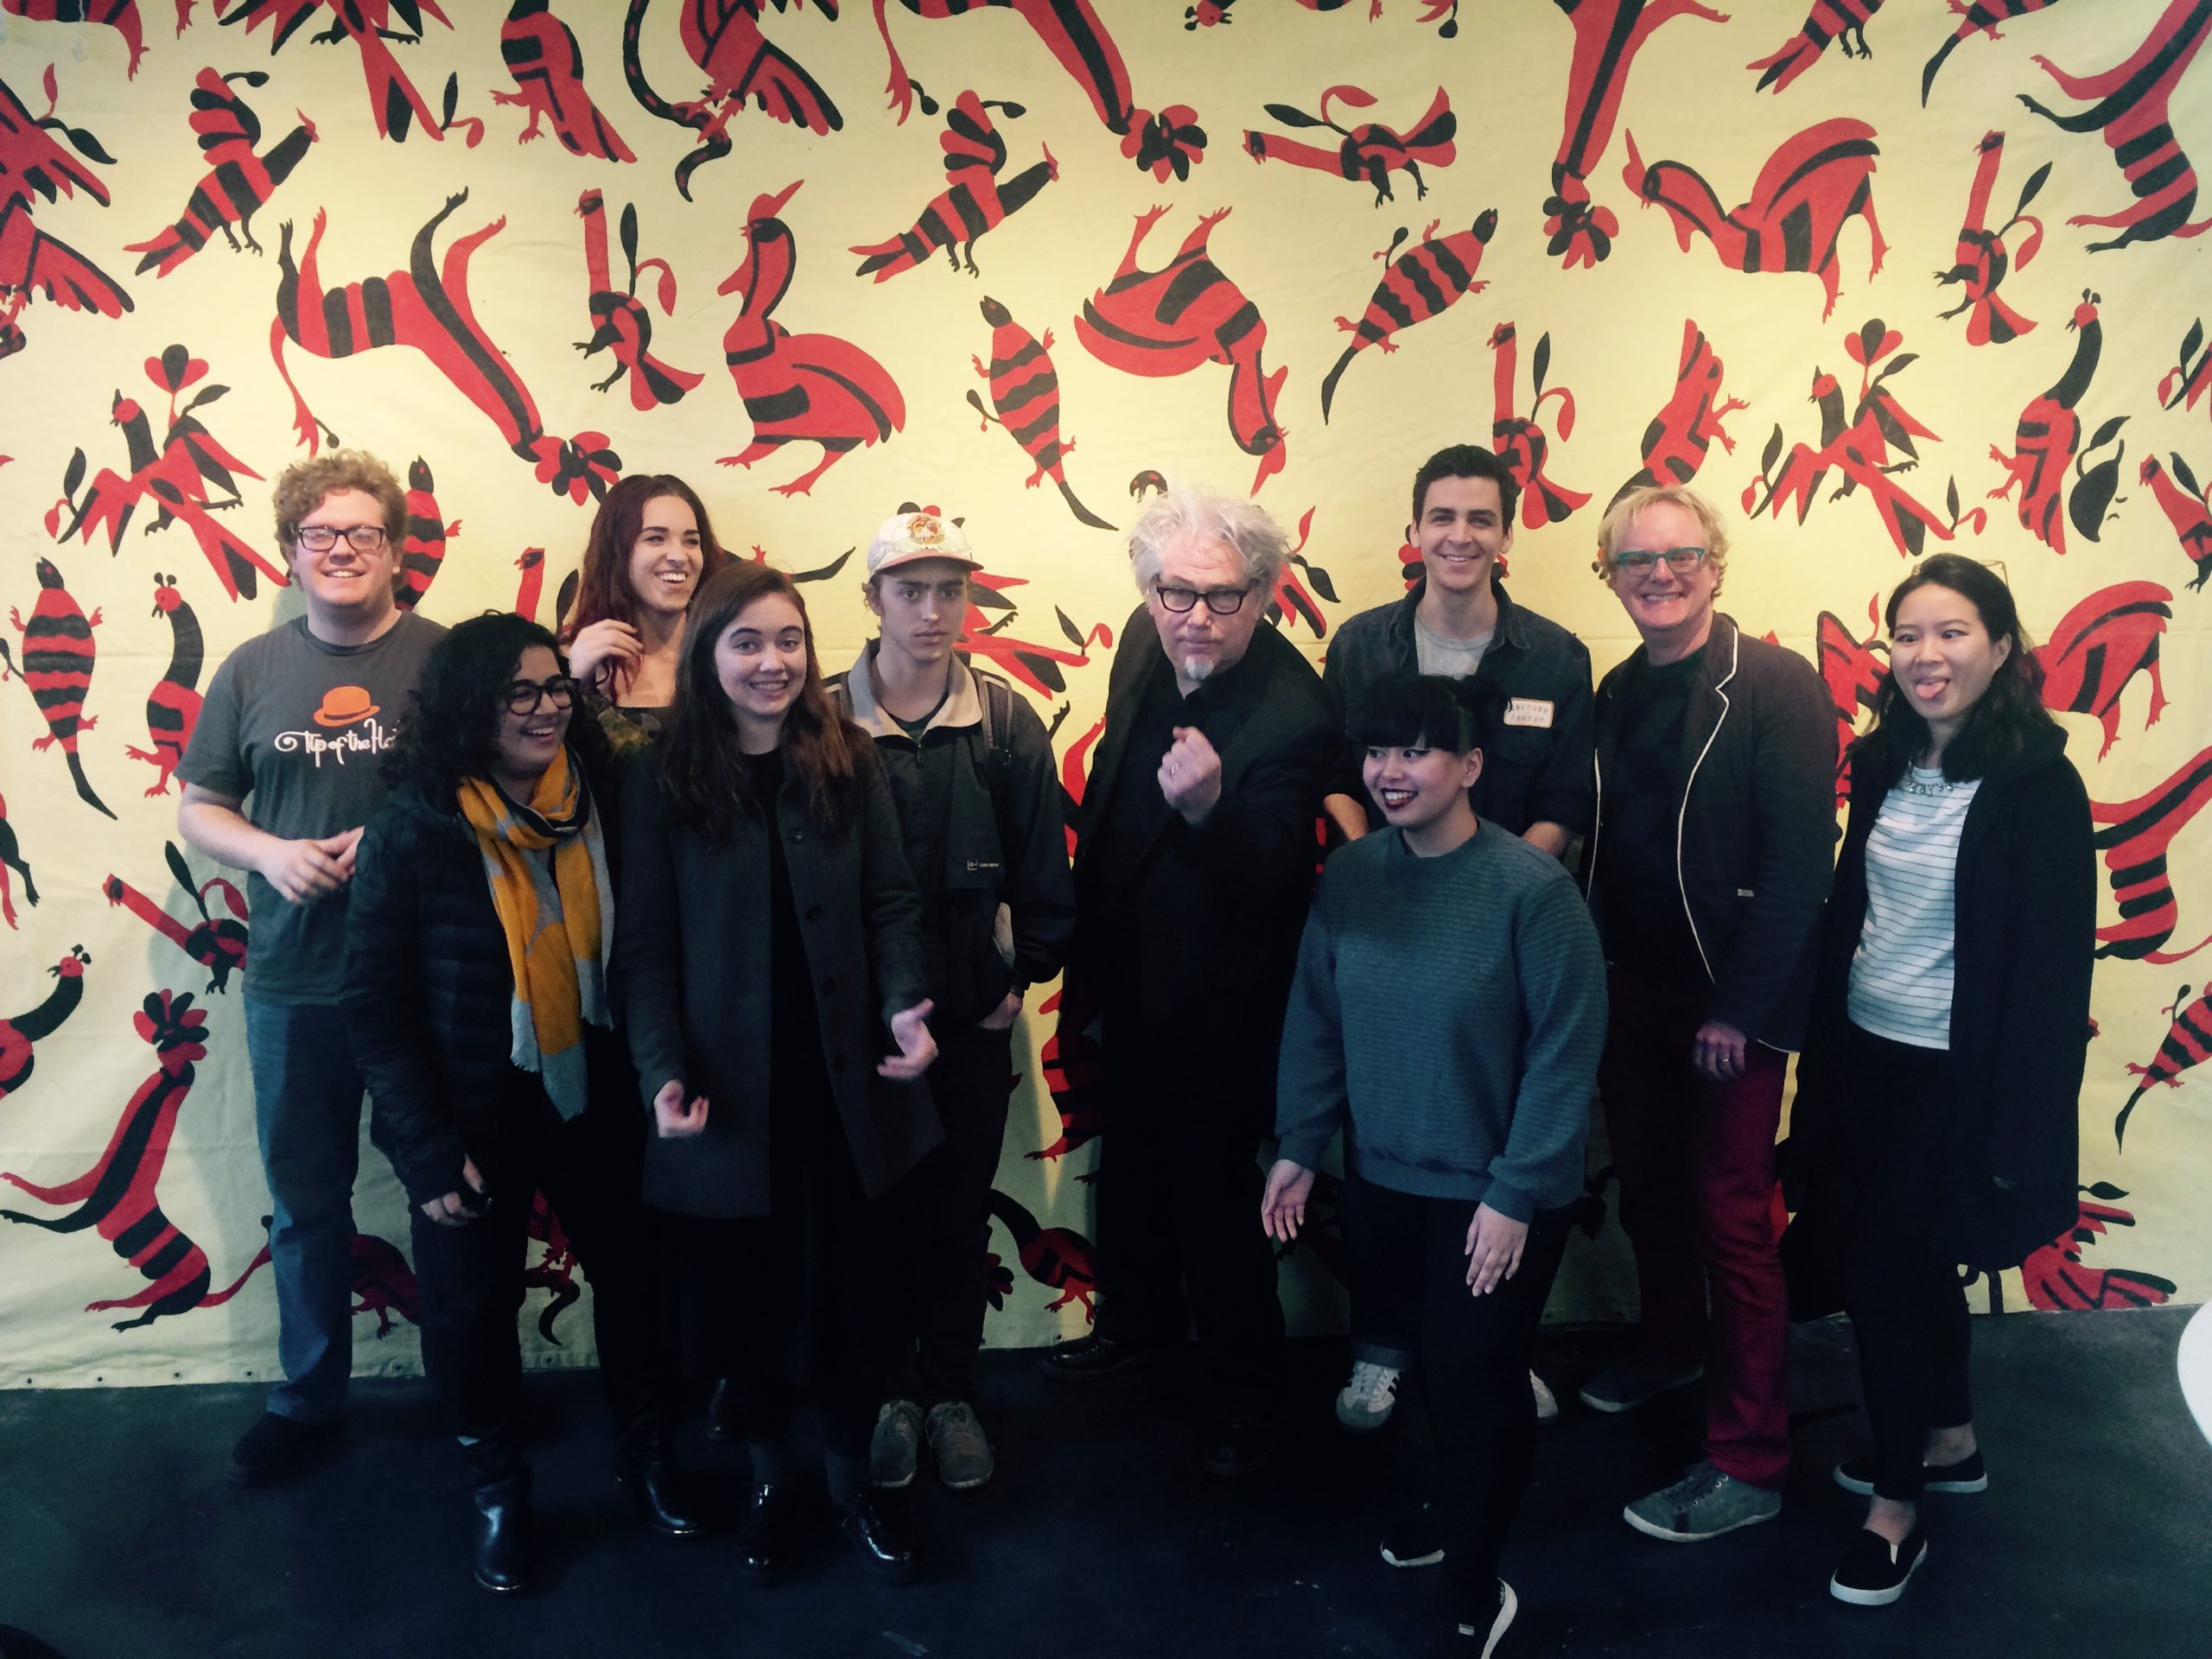 Chicago Getting New Museum For Industrial Punks: Museum of Post-Punk & Industrial Music